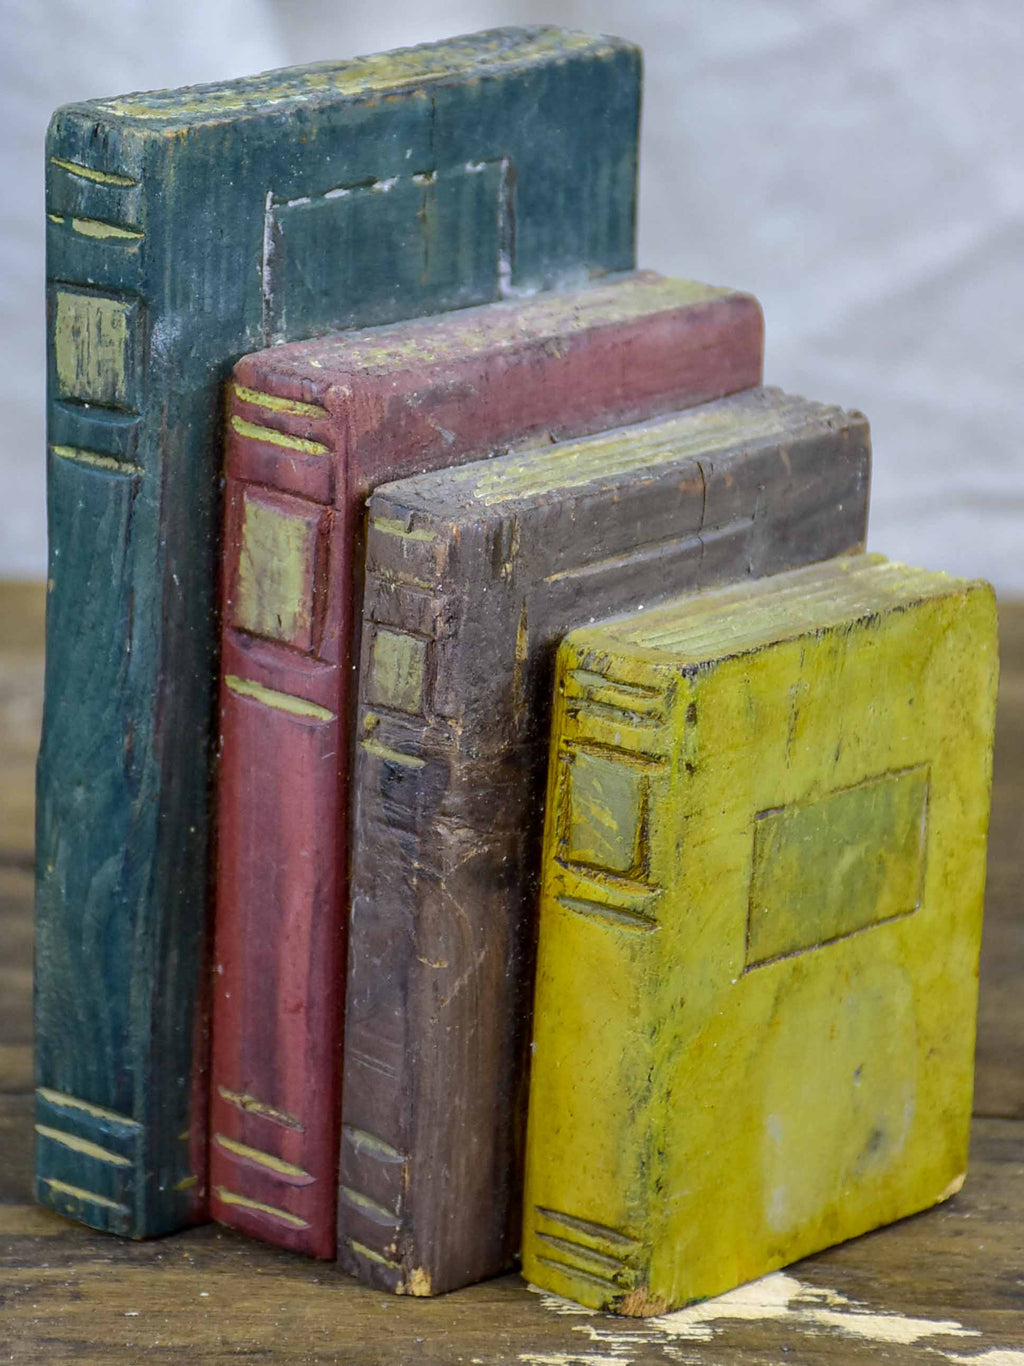 Antique French wooden sculpture of books